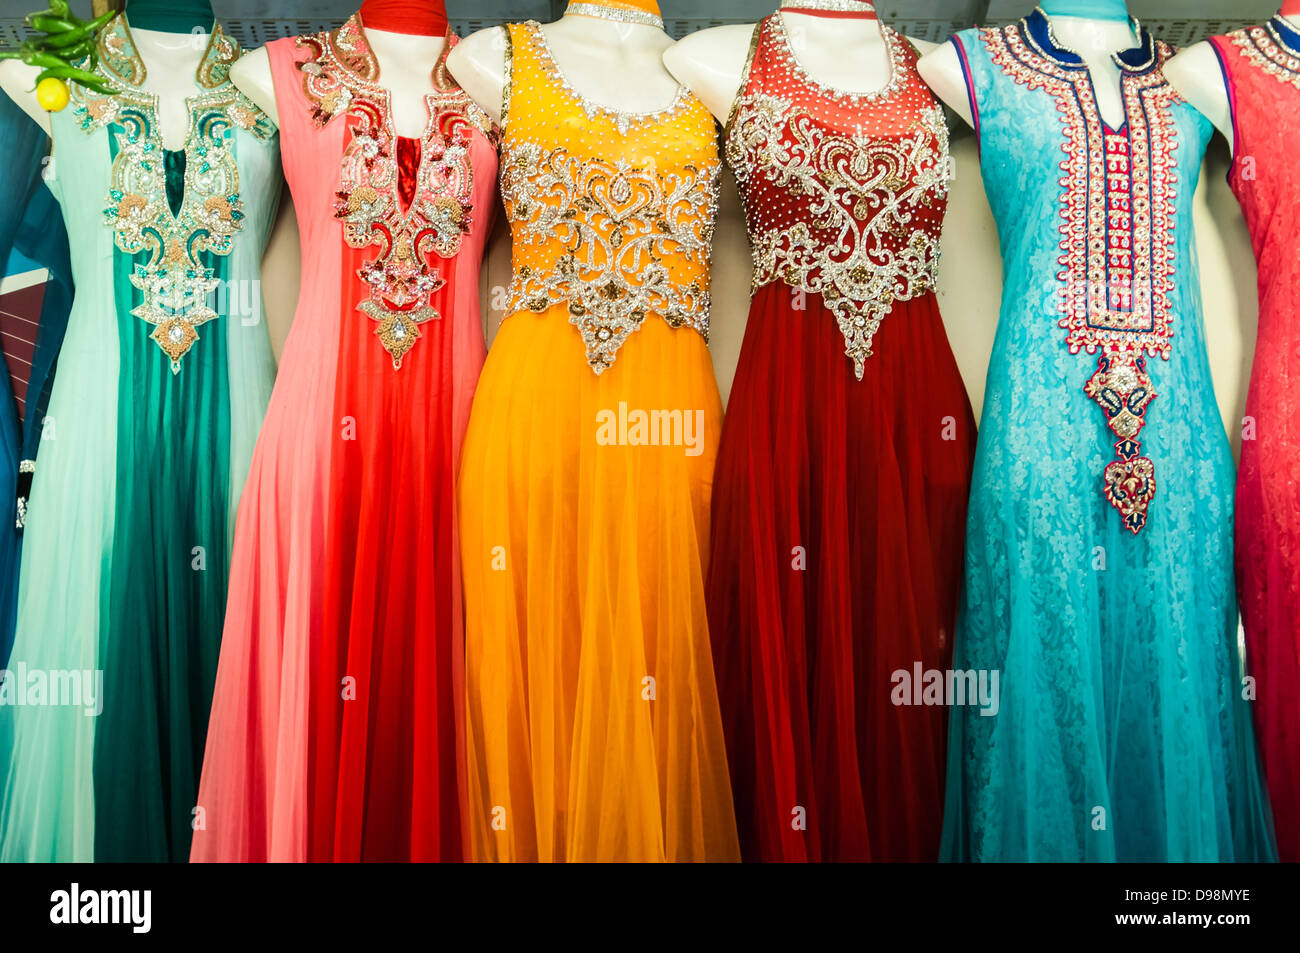 Indian traditional clothes for sale in the Market Stock Photo ...